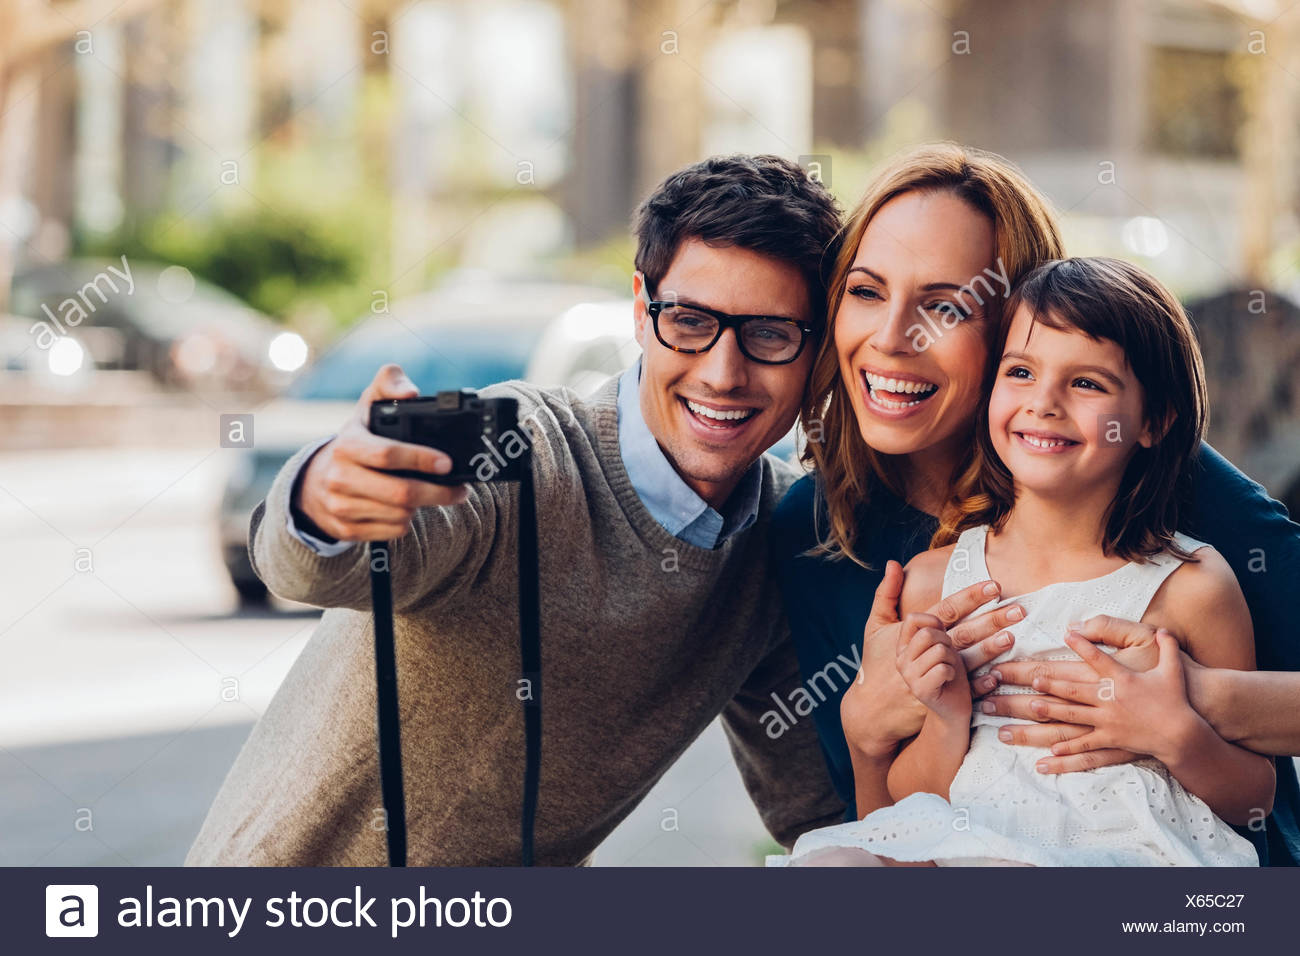 Man outdoors taking a selfie of his family with digital camera - Stock Image